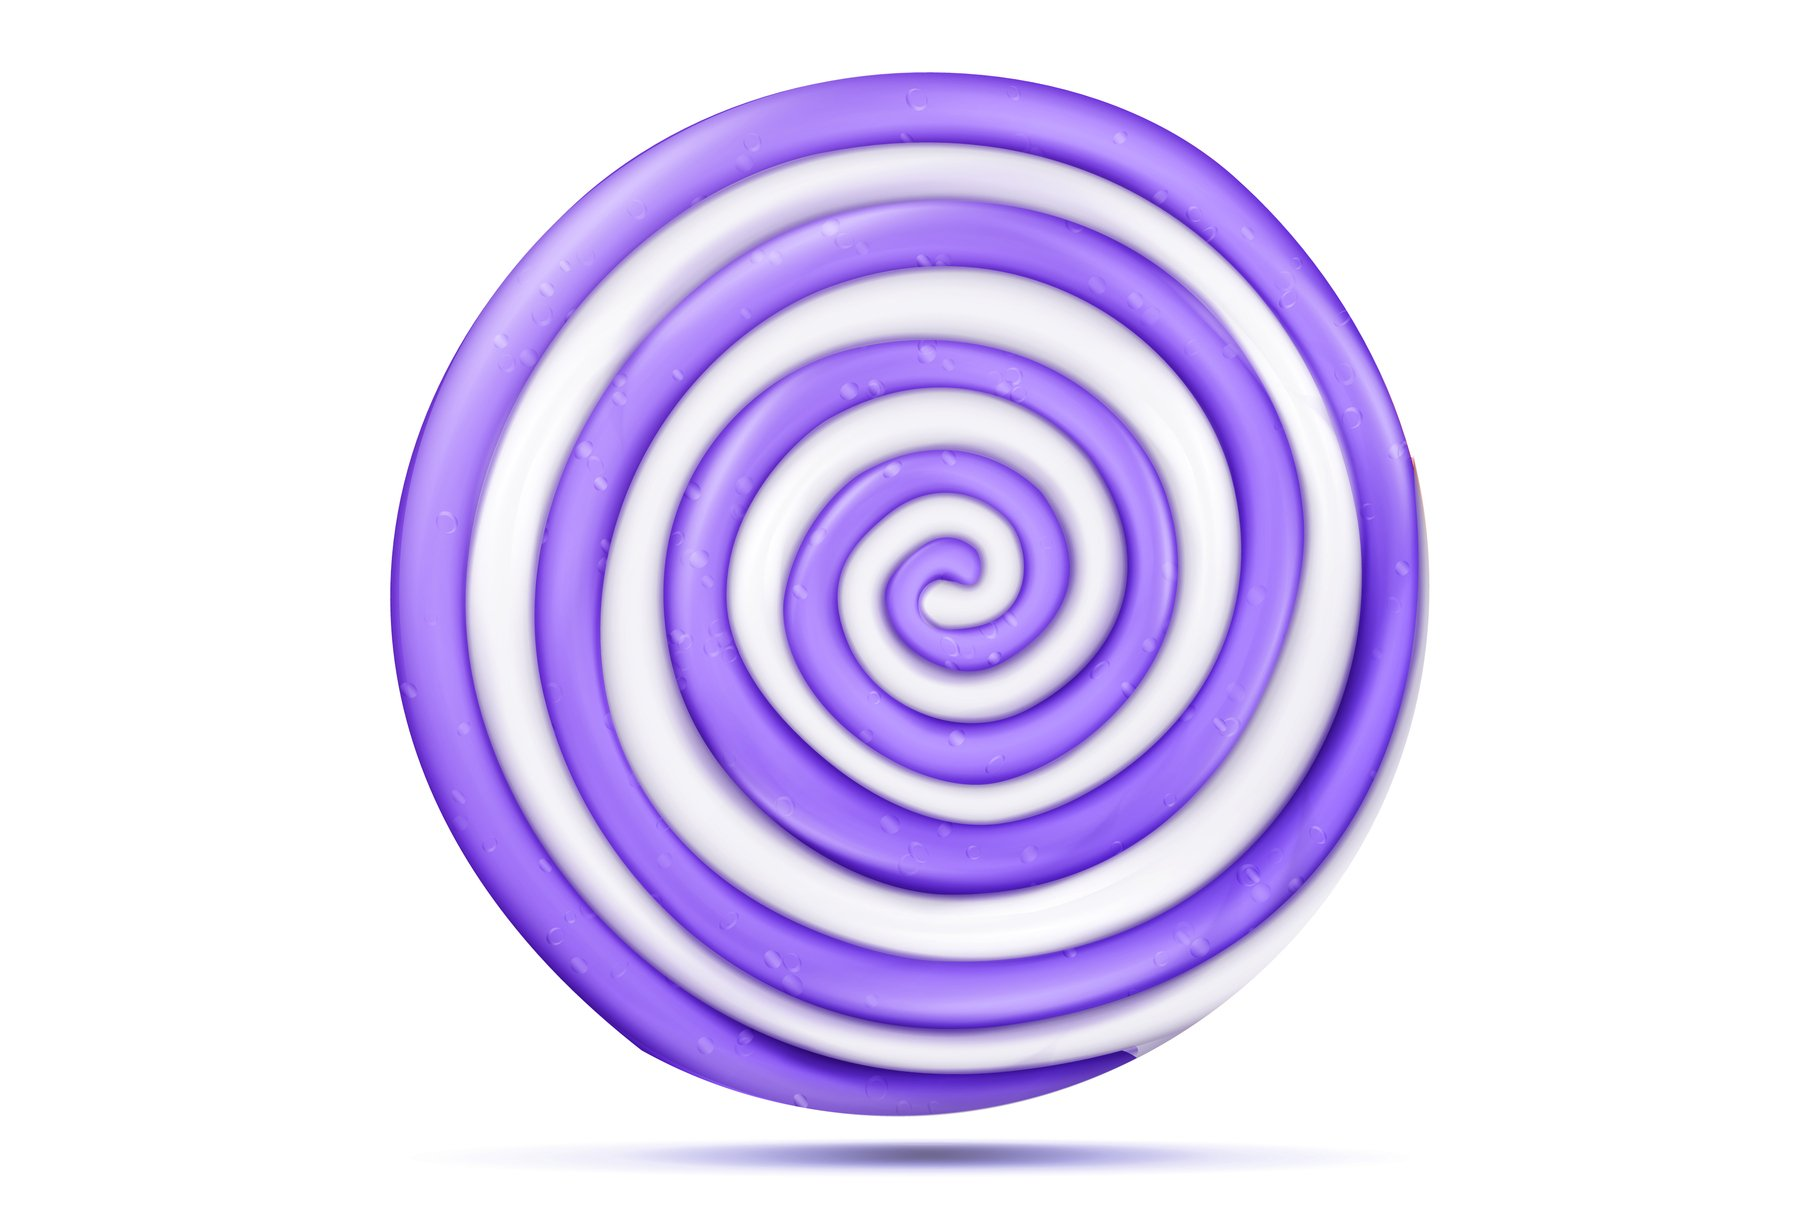 Lollipop Isolated Vector. Realistic Candy Round Purple example image 1